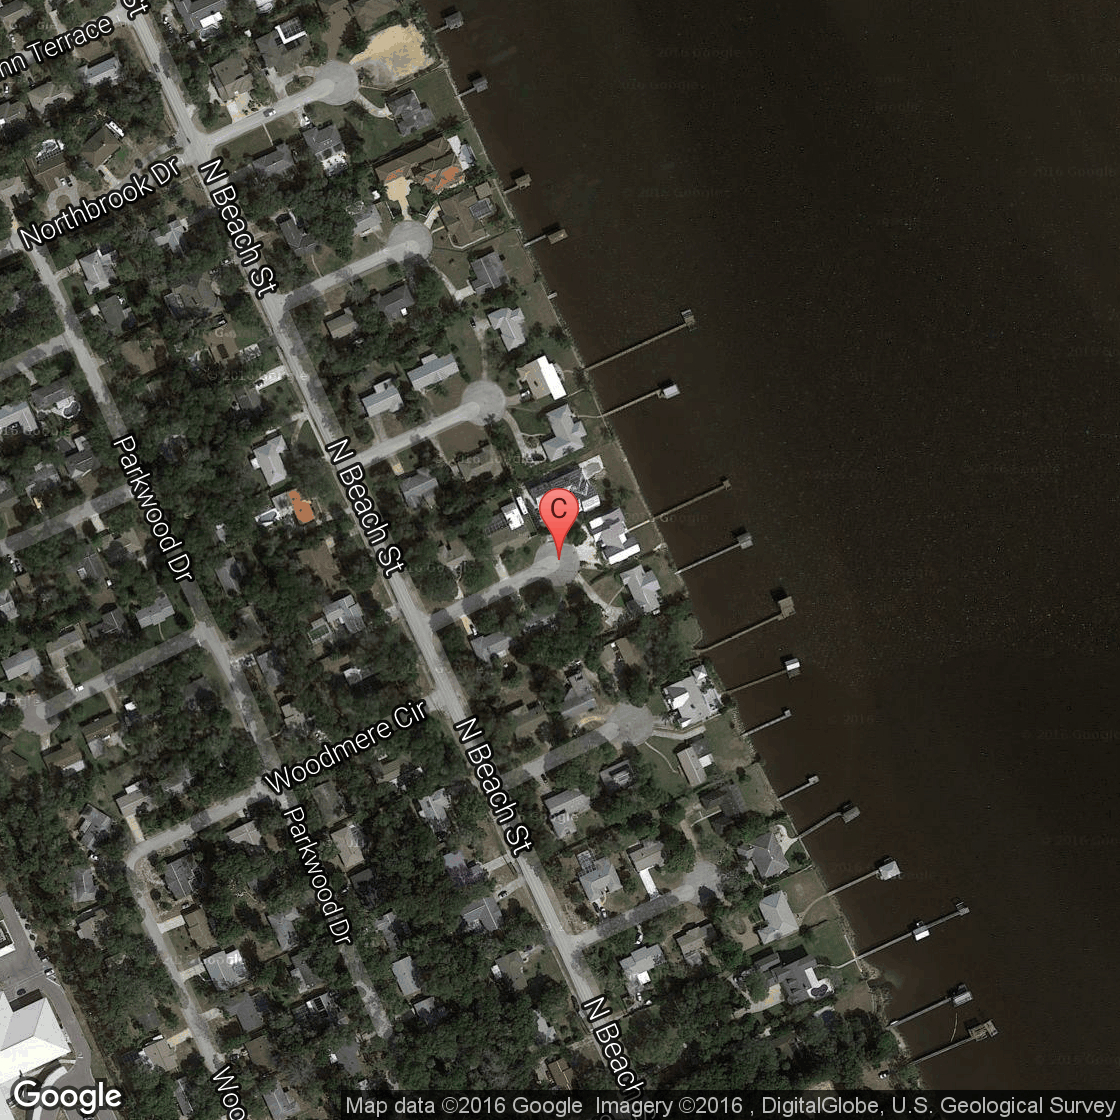 Hotels In Kissimmee, Florida, Near The Emerald Island Resort | Usa Today - Emerald Isle Florida Map